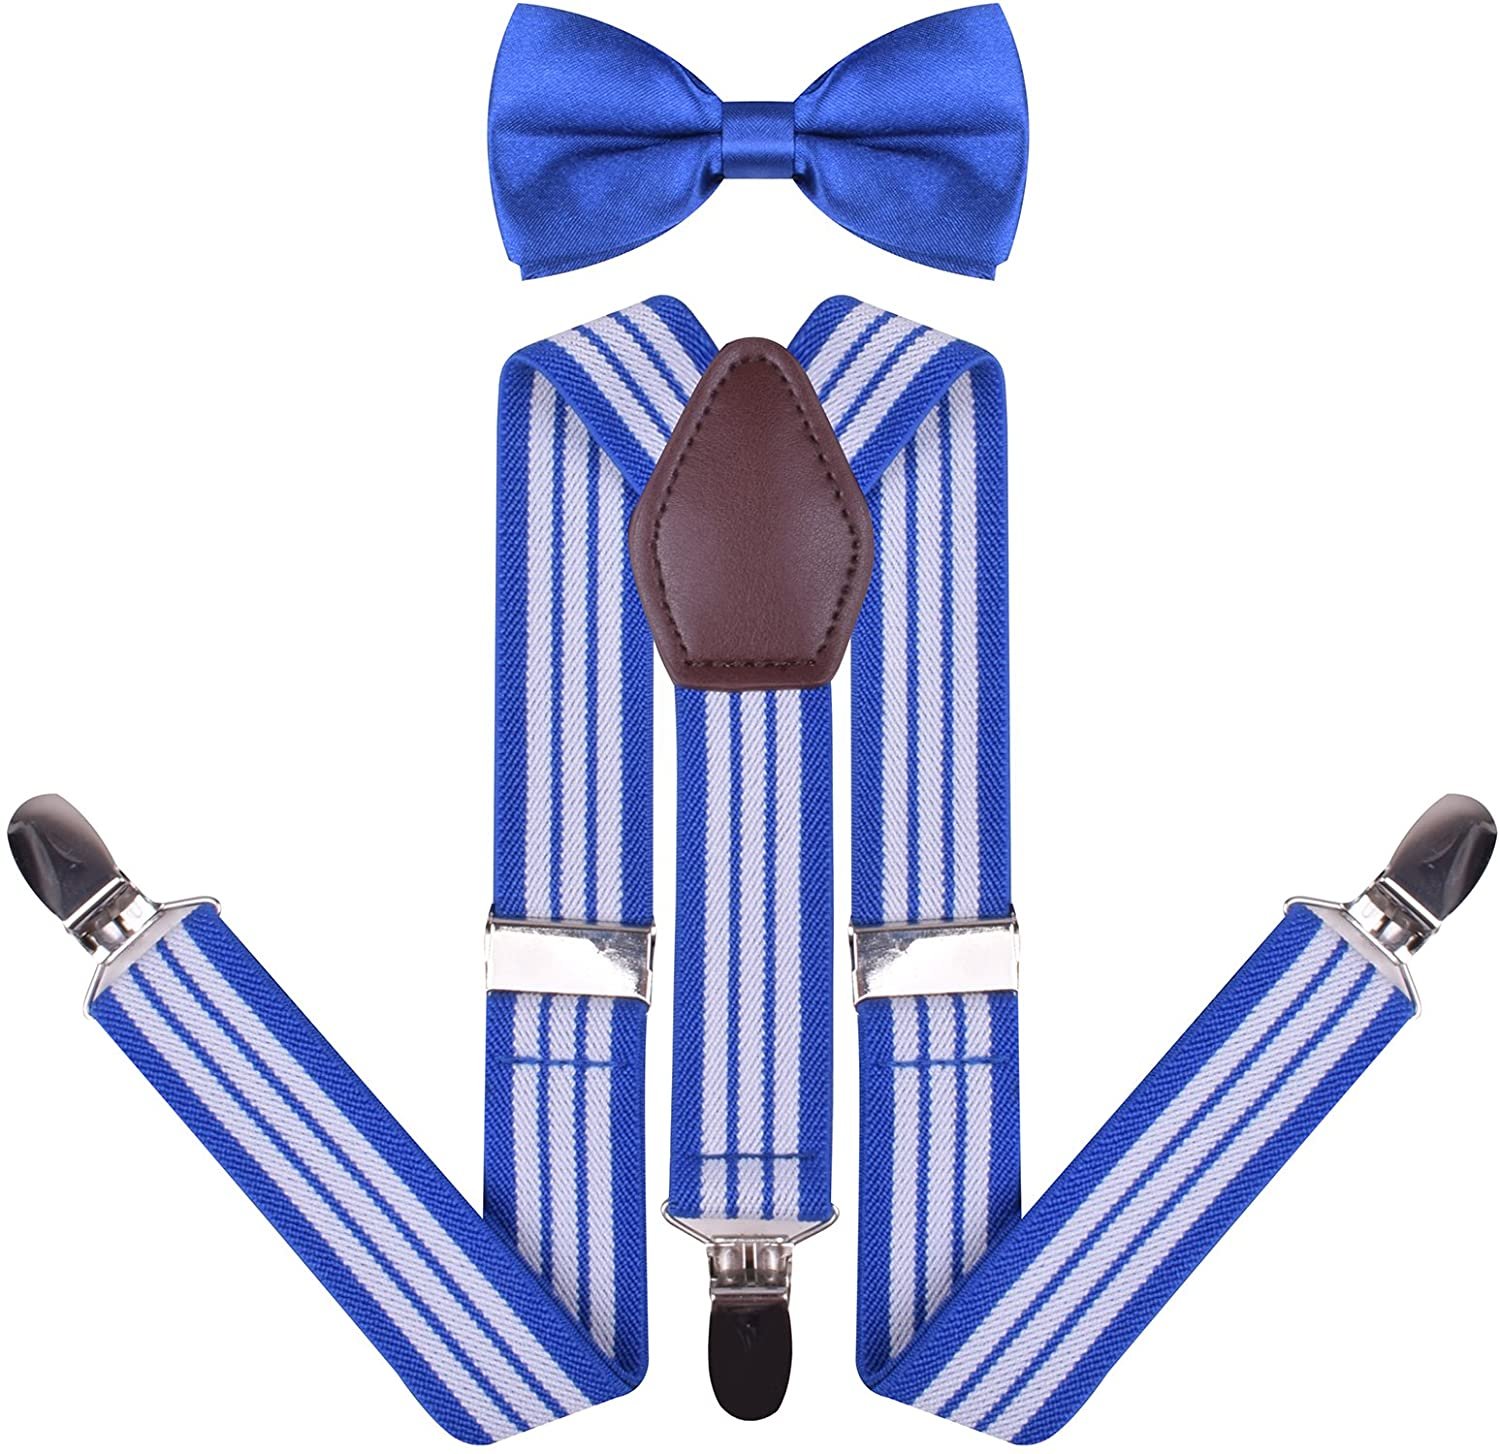 YJDS Mens Boys Leather Suspenders and Pre Tied Bowtie Set UEHGXZE448630